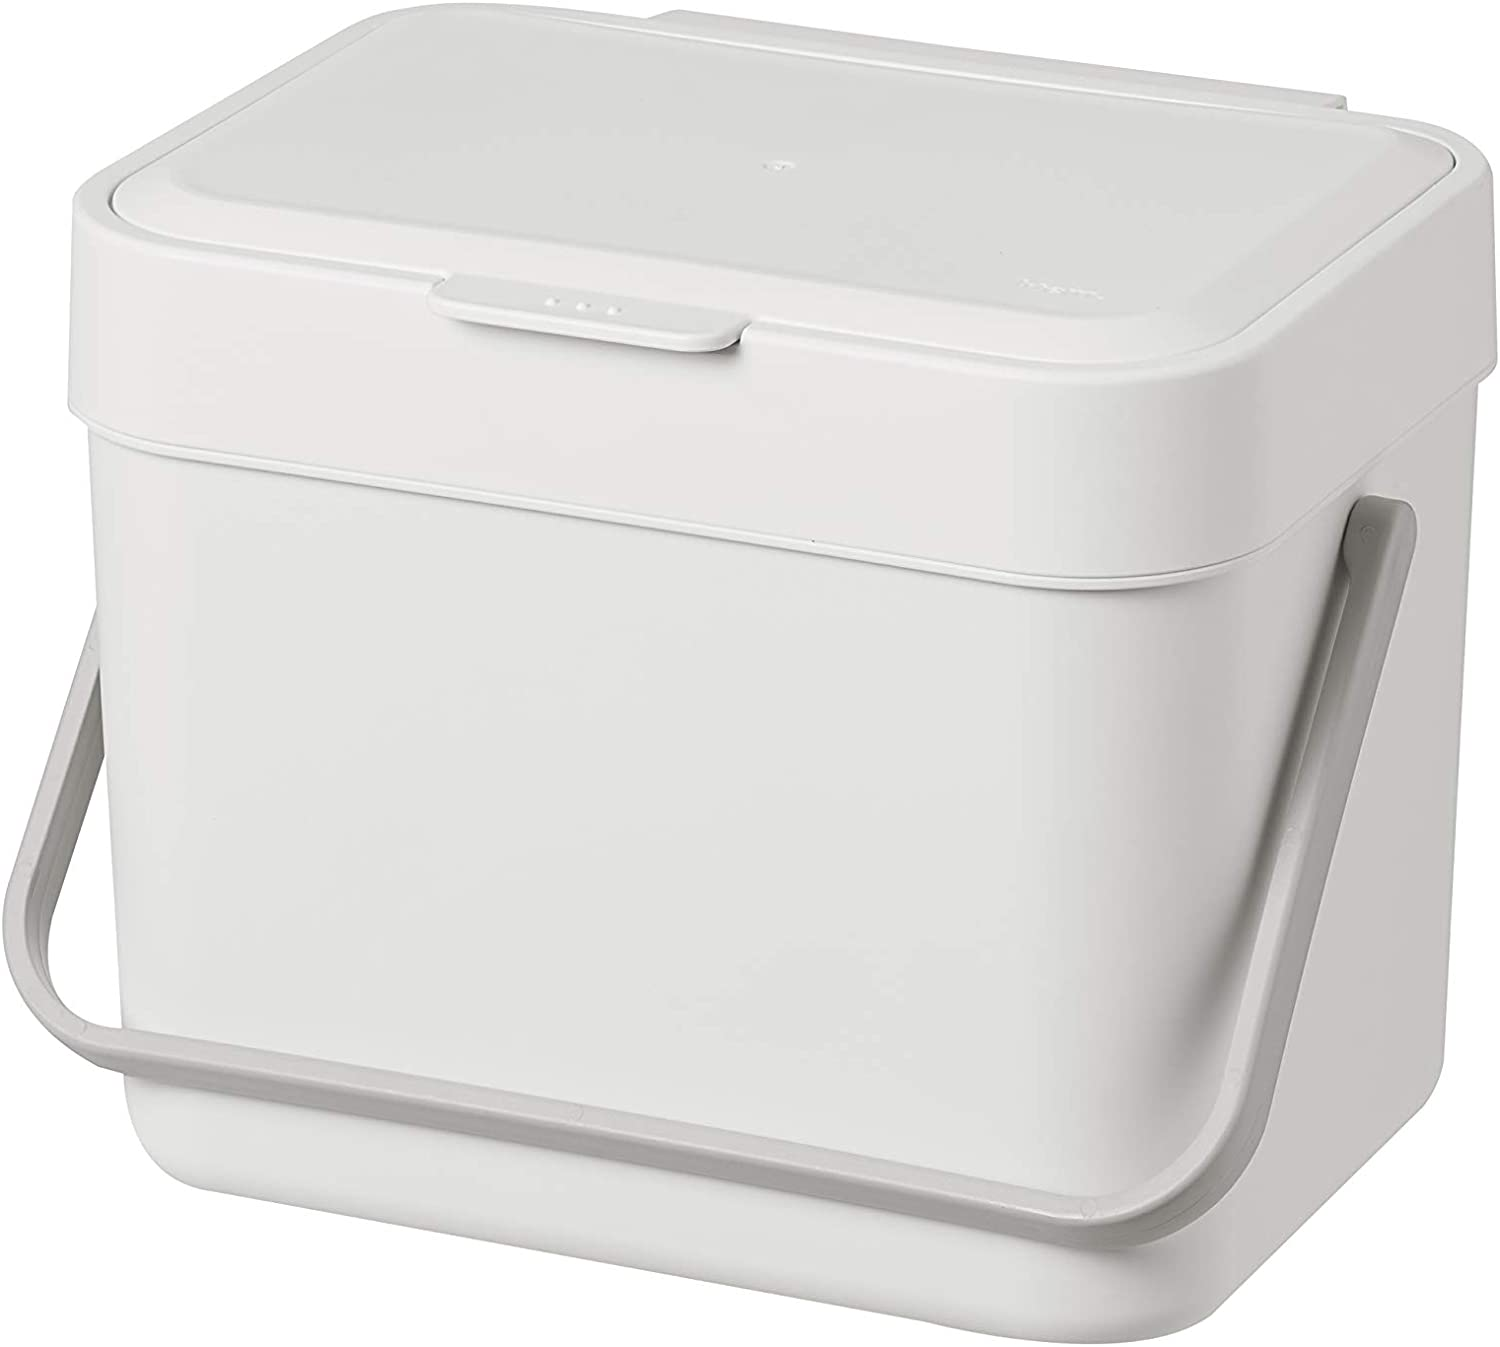 Litem Food Waste Basket Bin – a Wall Hanging Type Bucket with Hook and Bracket to Hang Against Wall or Kitchen countertop for Your conveniences 1.05 Gallons (4L) (Ivory)